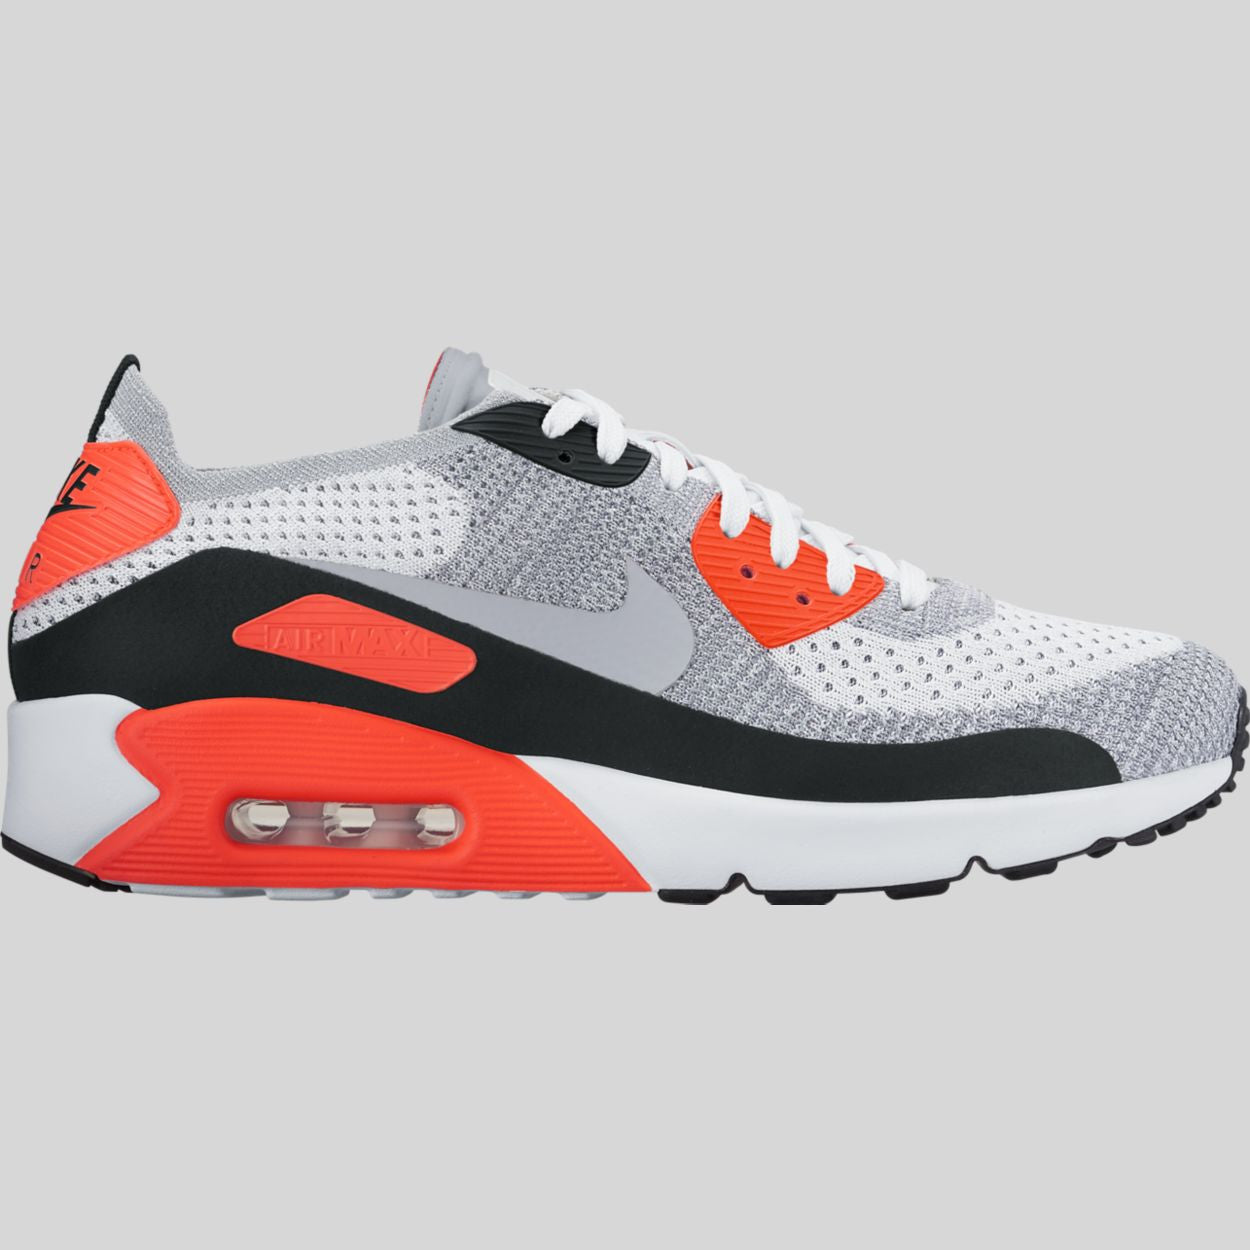 new product 7688b 6bf35 Nike Air Max 90 Ultra 2.0 Flyknit Infrared